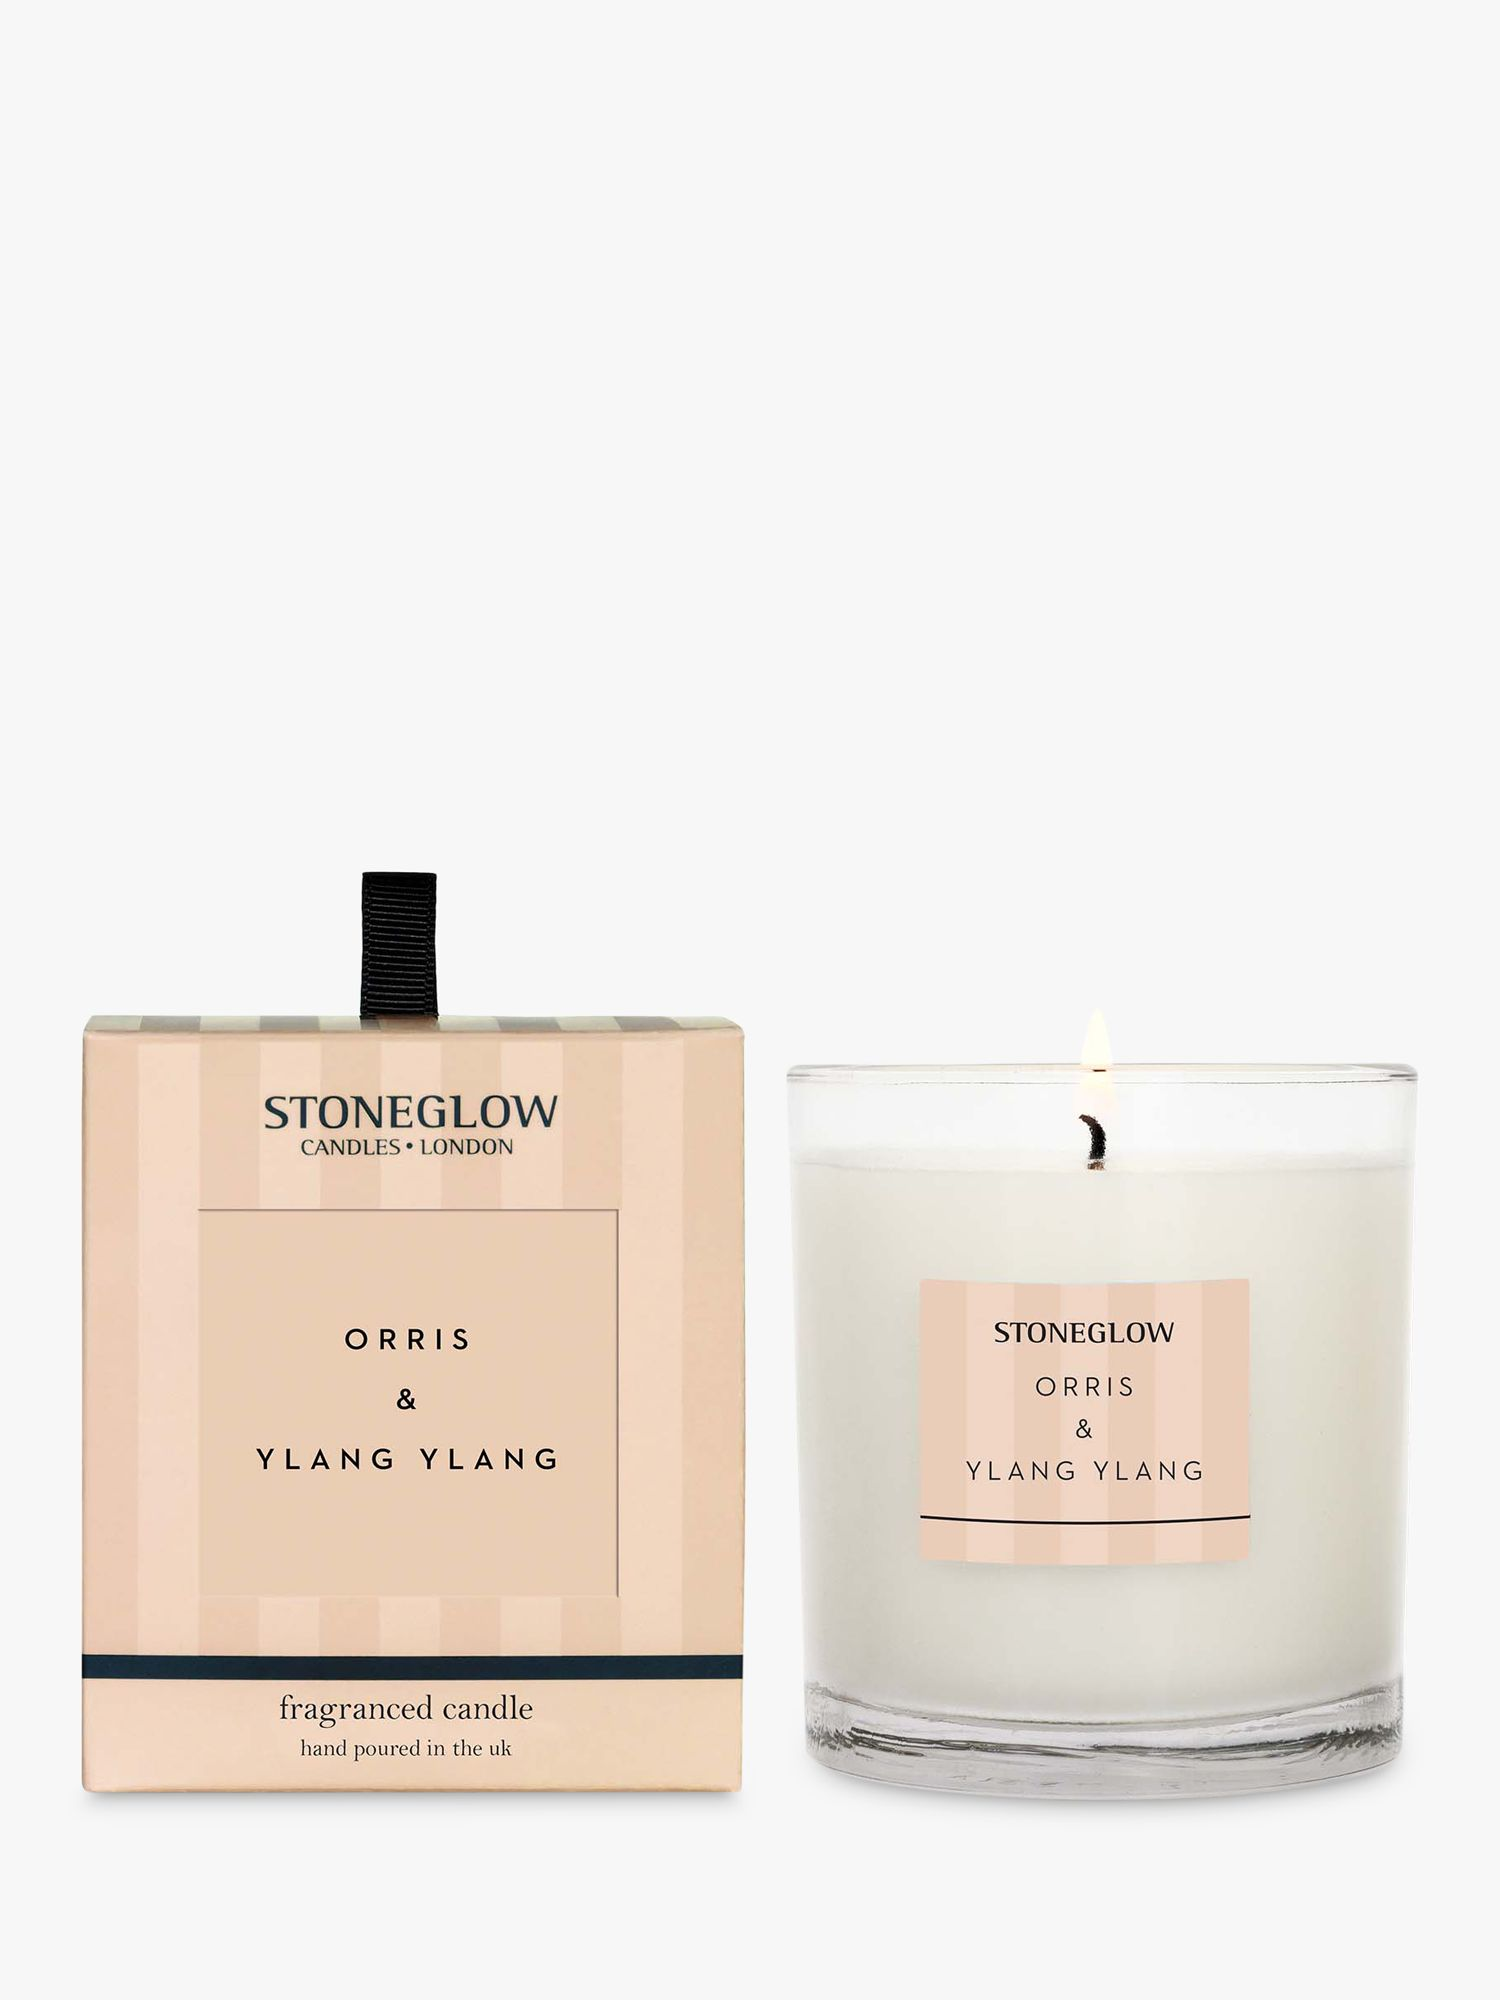 Stoneglow Stoneglow Modern Classic Orris & Ylang Ylang Scented Candle, 220g